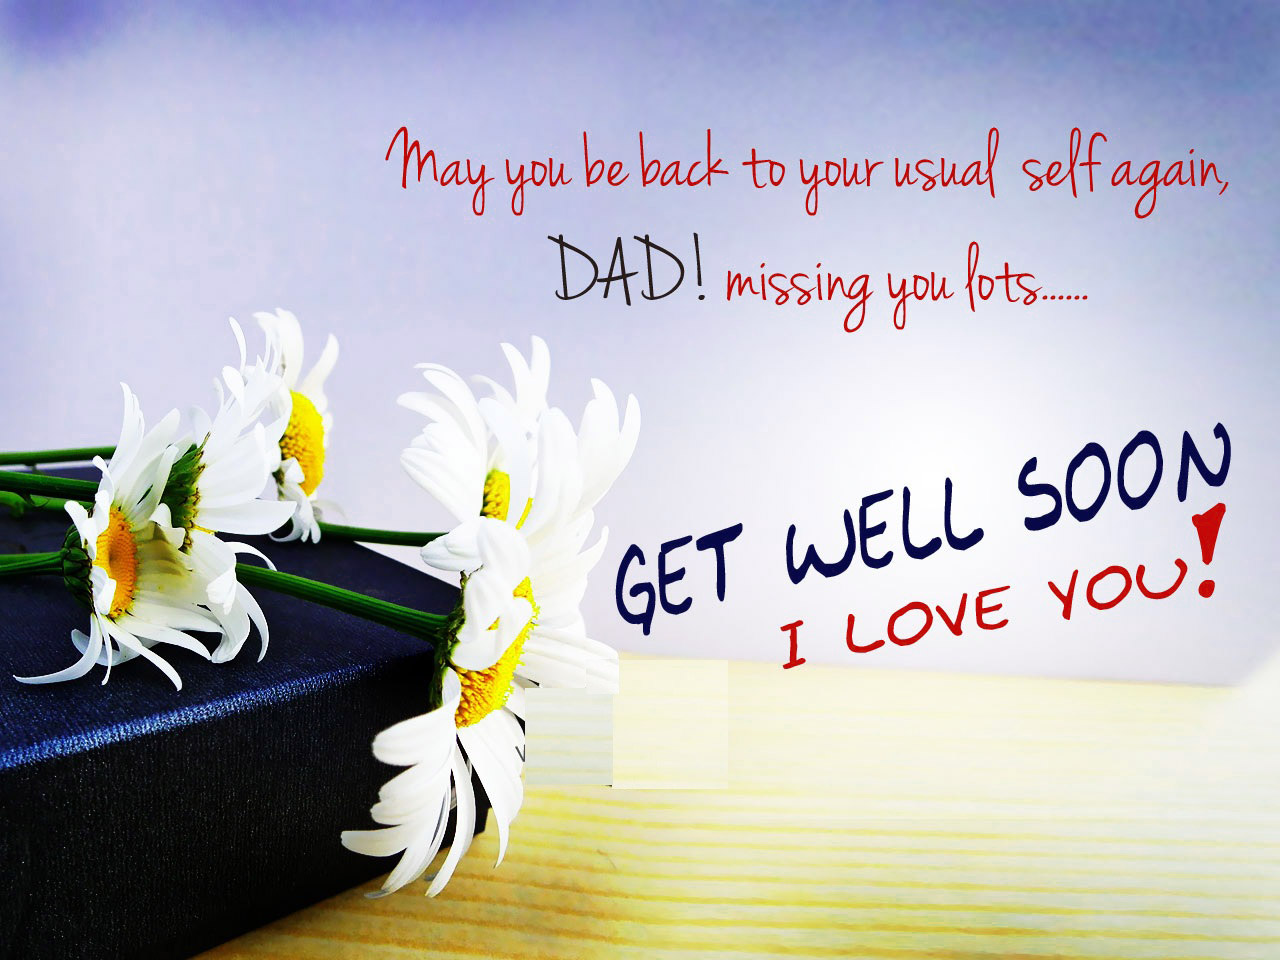 Get Well Soon Images for daughter lover Best Friend hd for Whatsapp Photo Pictures Pics HD